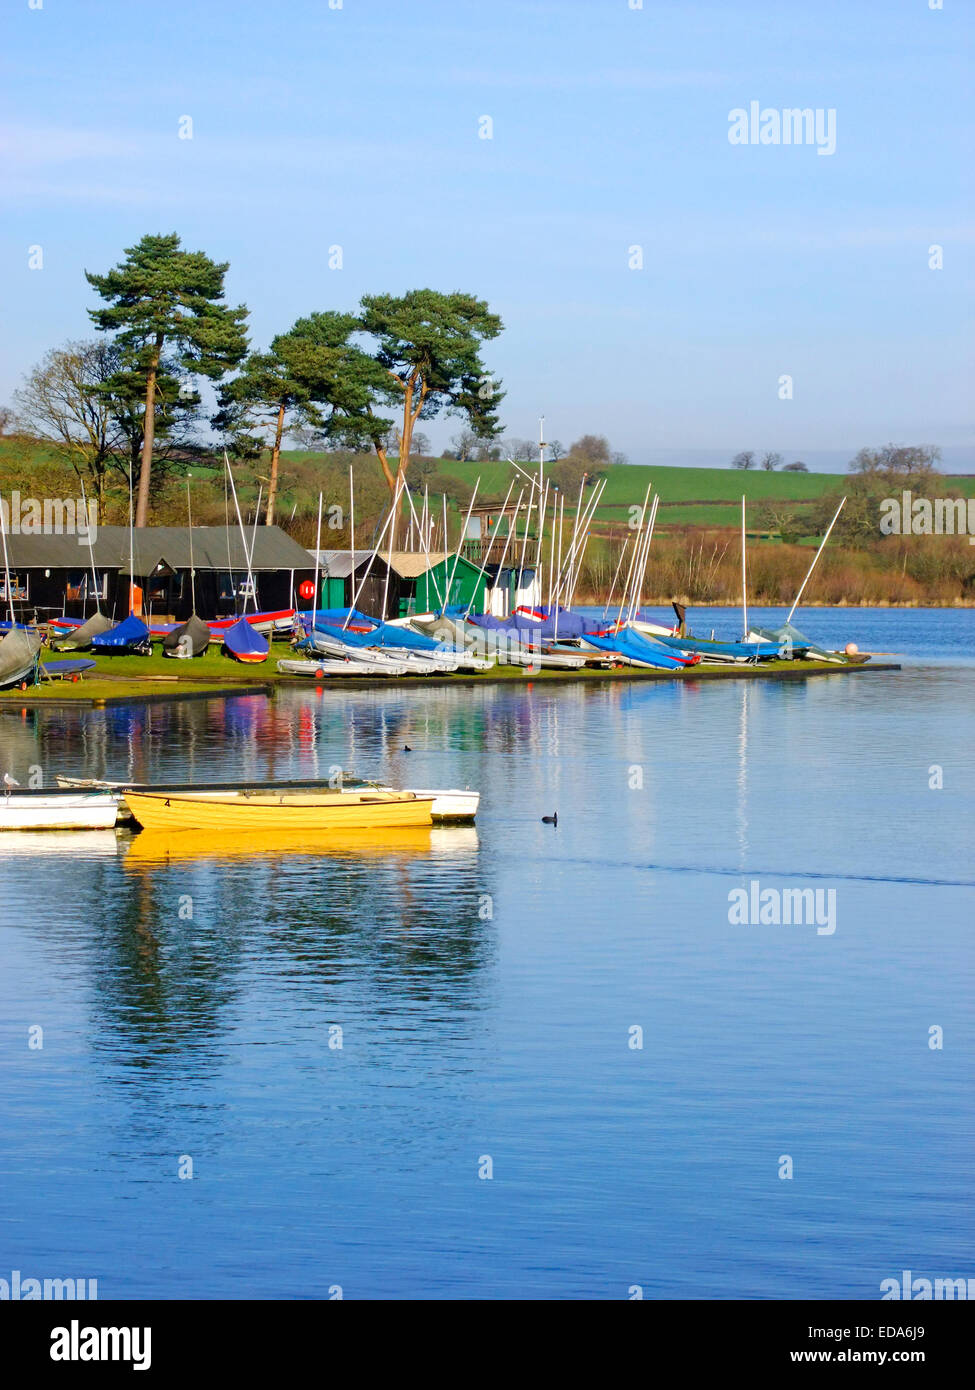 Barnt Green Sailing Club, Upper Bittell Reservoir, Cofton Hackett, Worcestershire, England, UK - Stock Image